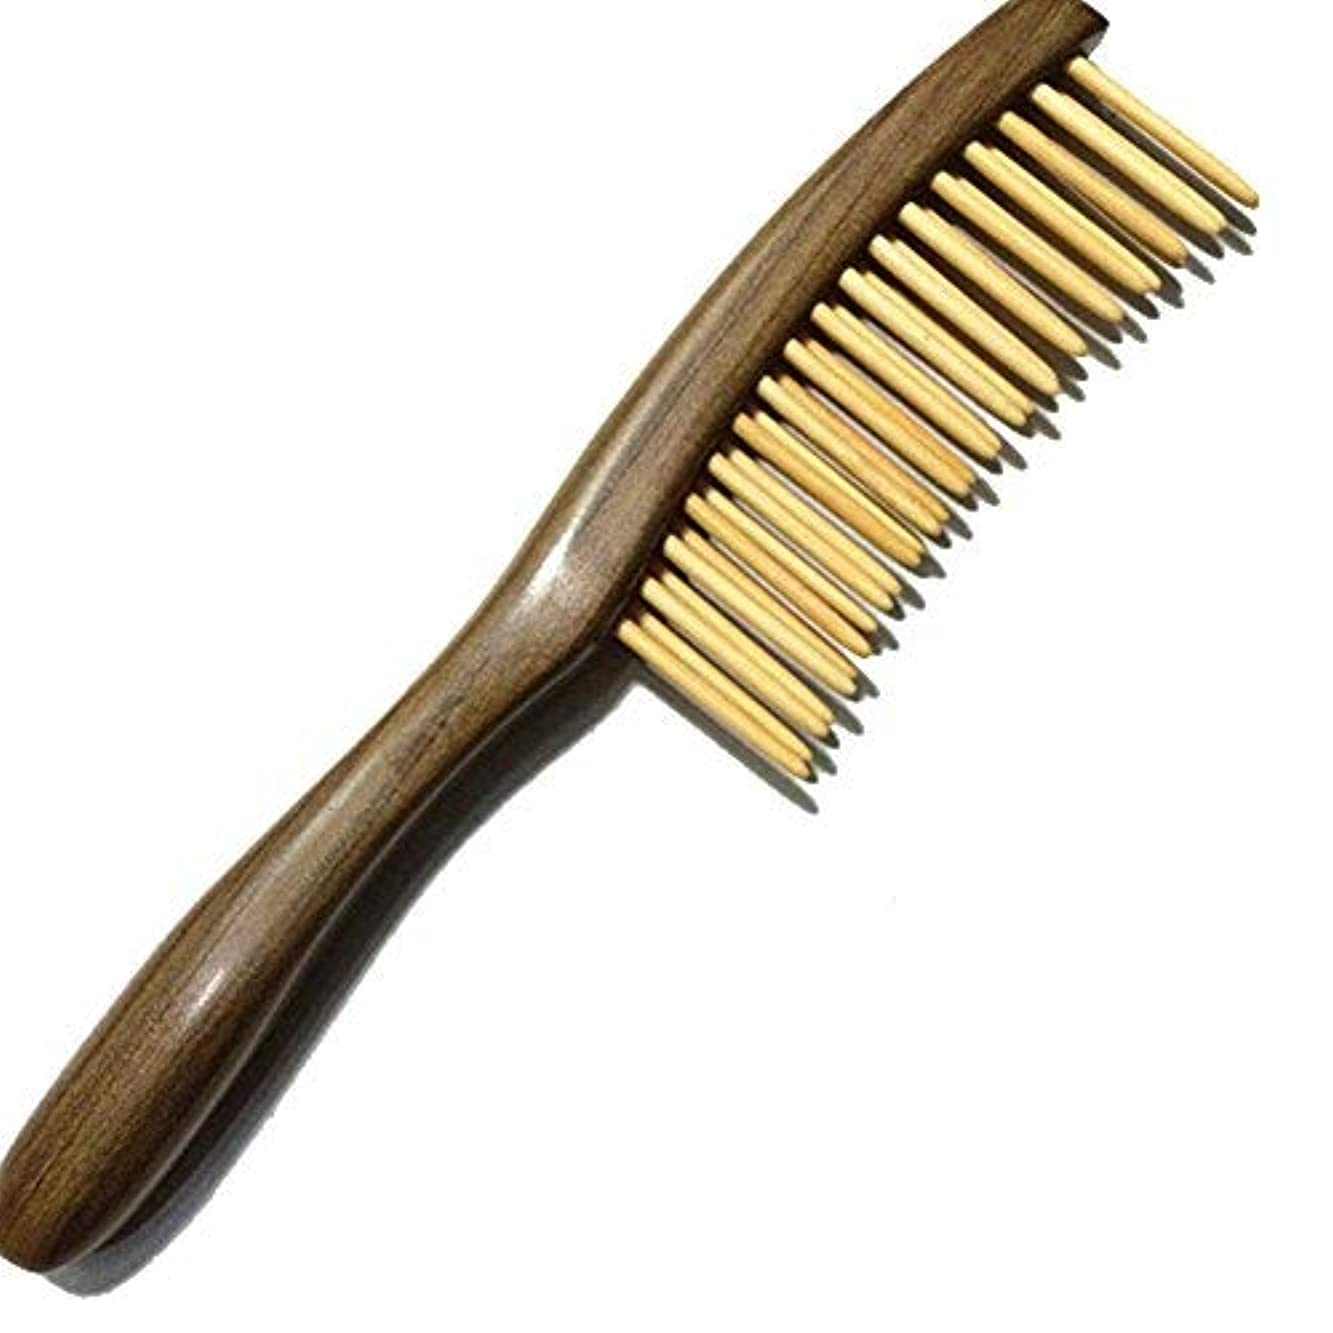 癒す買い物に行く塊Fitlyiee Double Rows Teeth Sandalwood Hair Comb Anti-Static Handmade Wide Tooth Wooden Comb [並行輸入品]